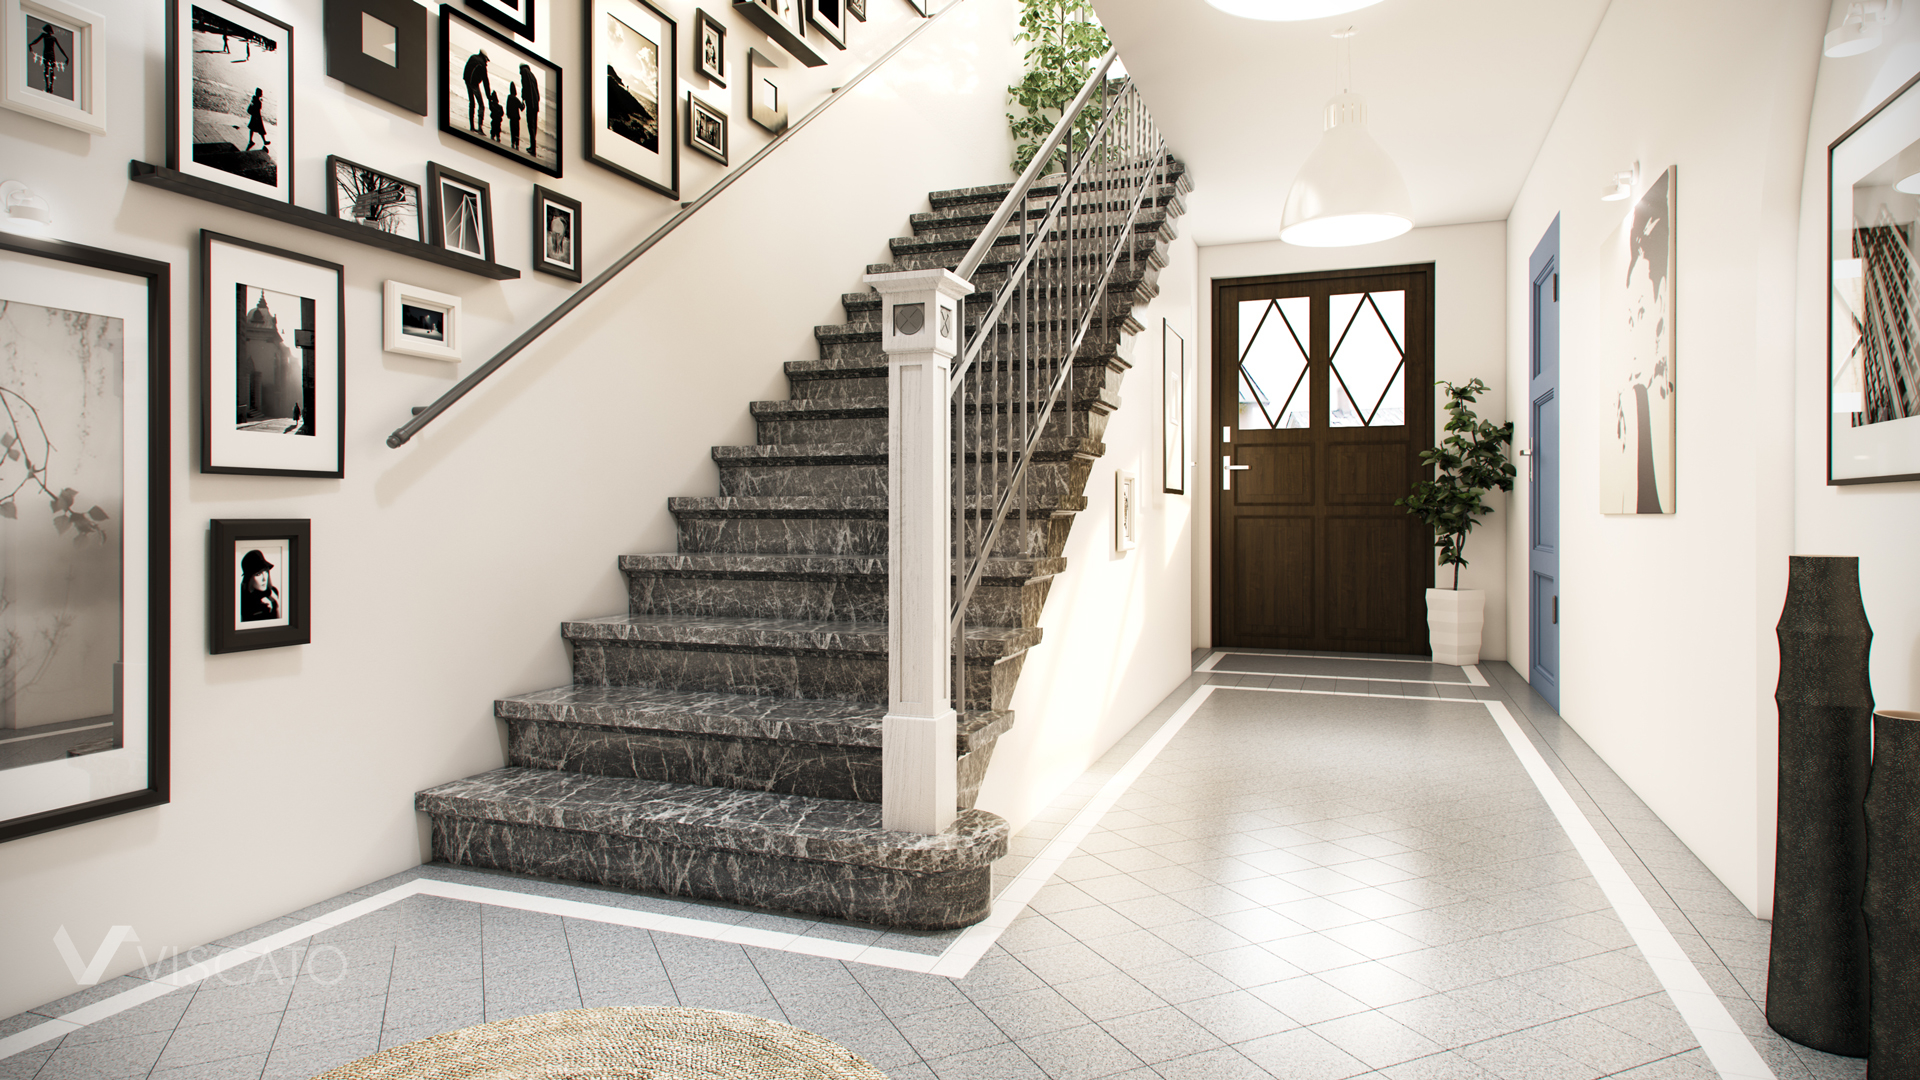 Staircase rendering prepared by 3D company Viscato